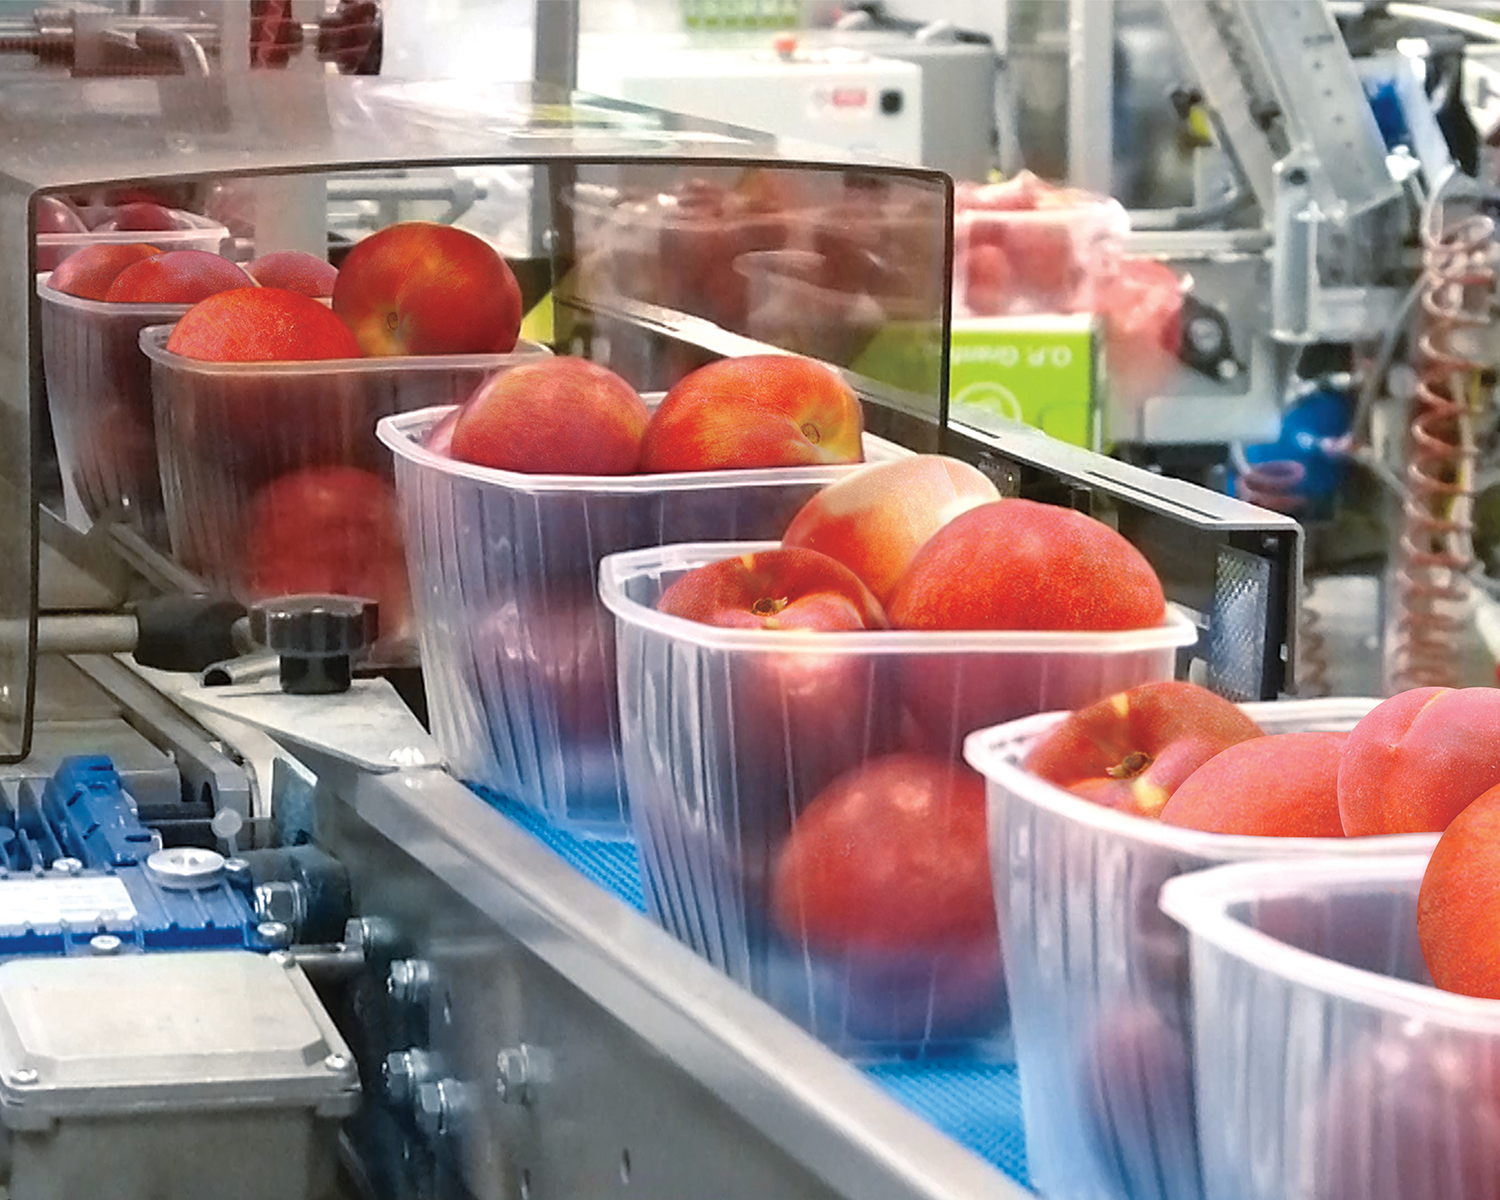 Produce being packaged by a Sorma weighing and packaging machine.